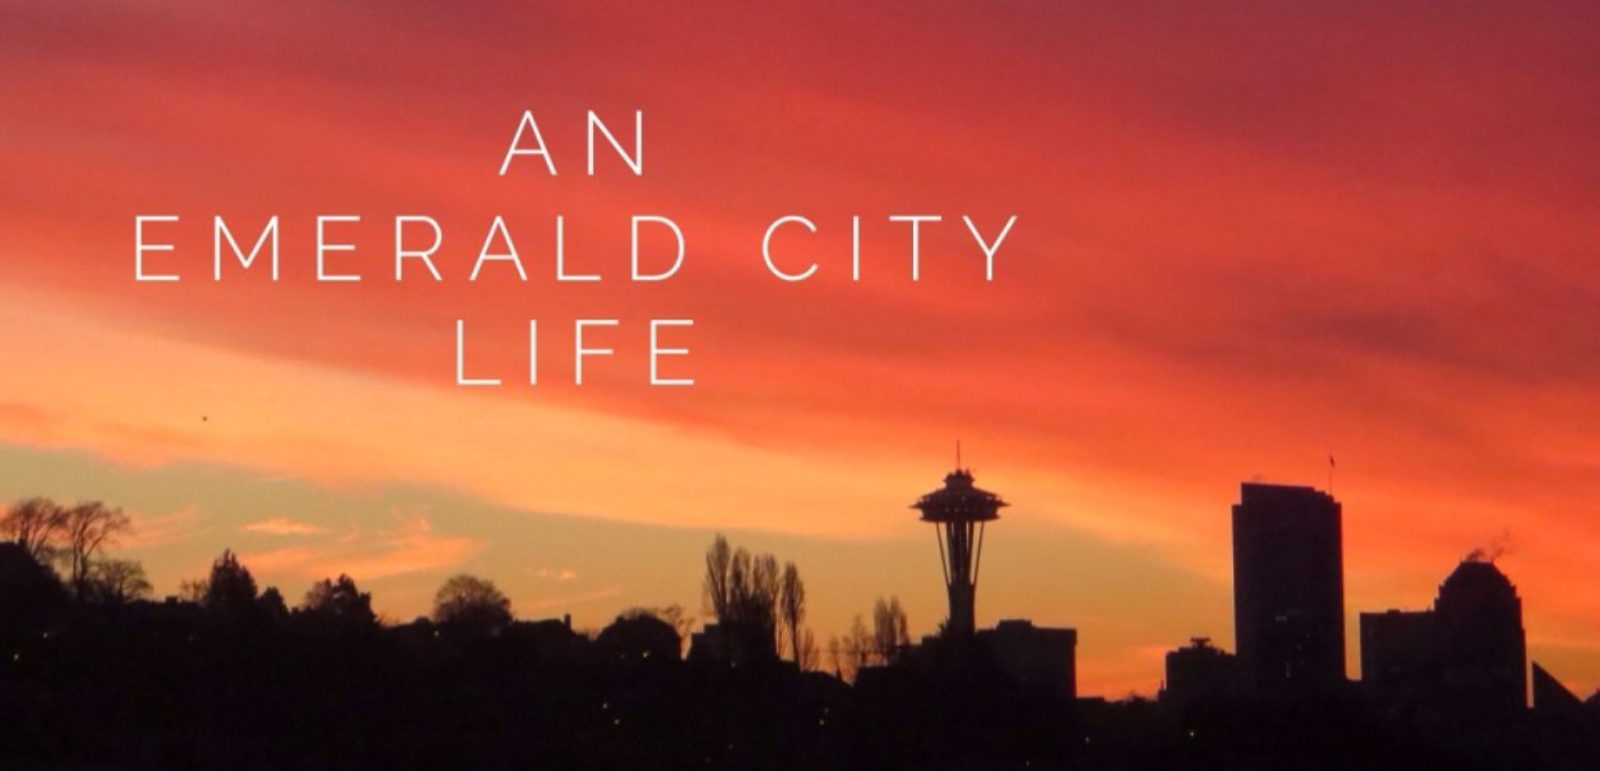 An Emerald City Life